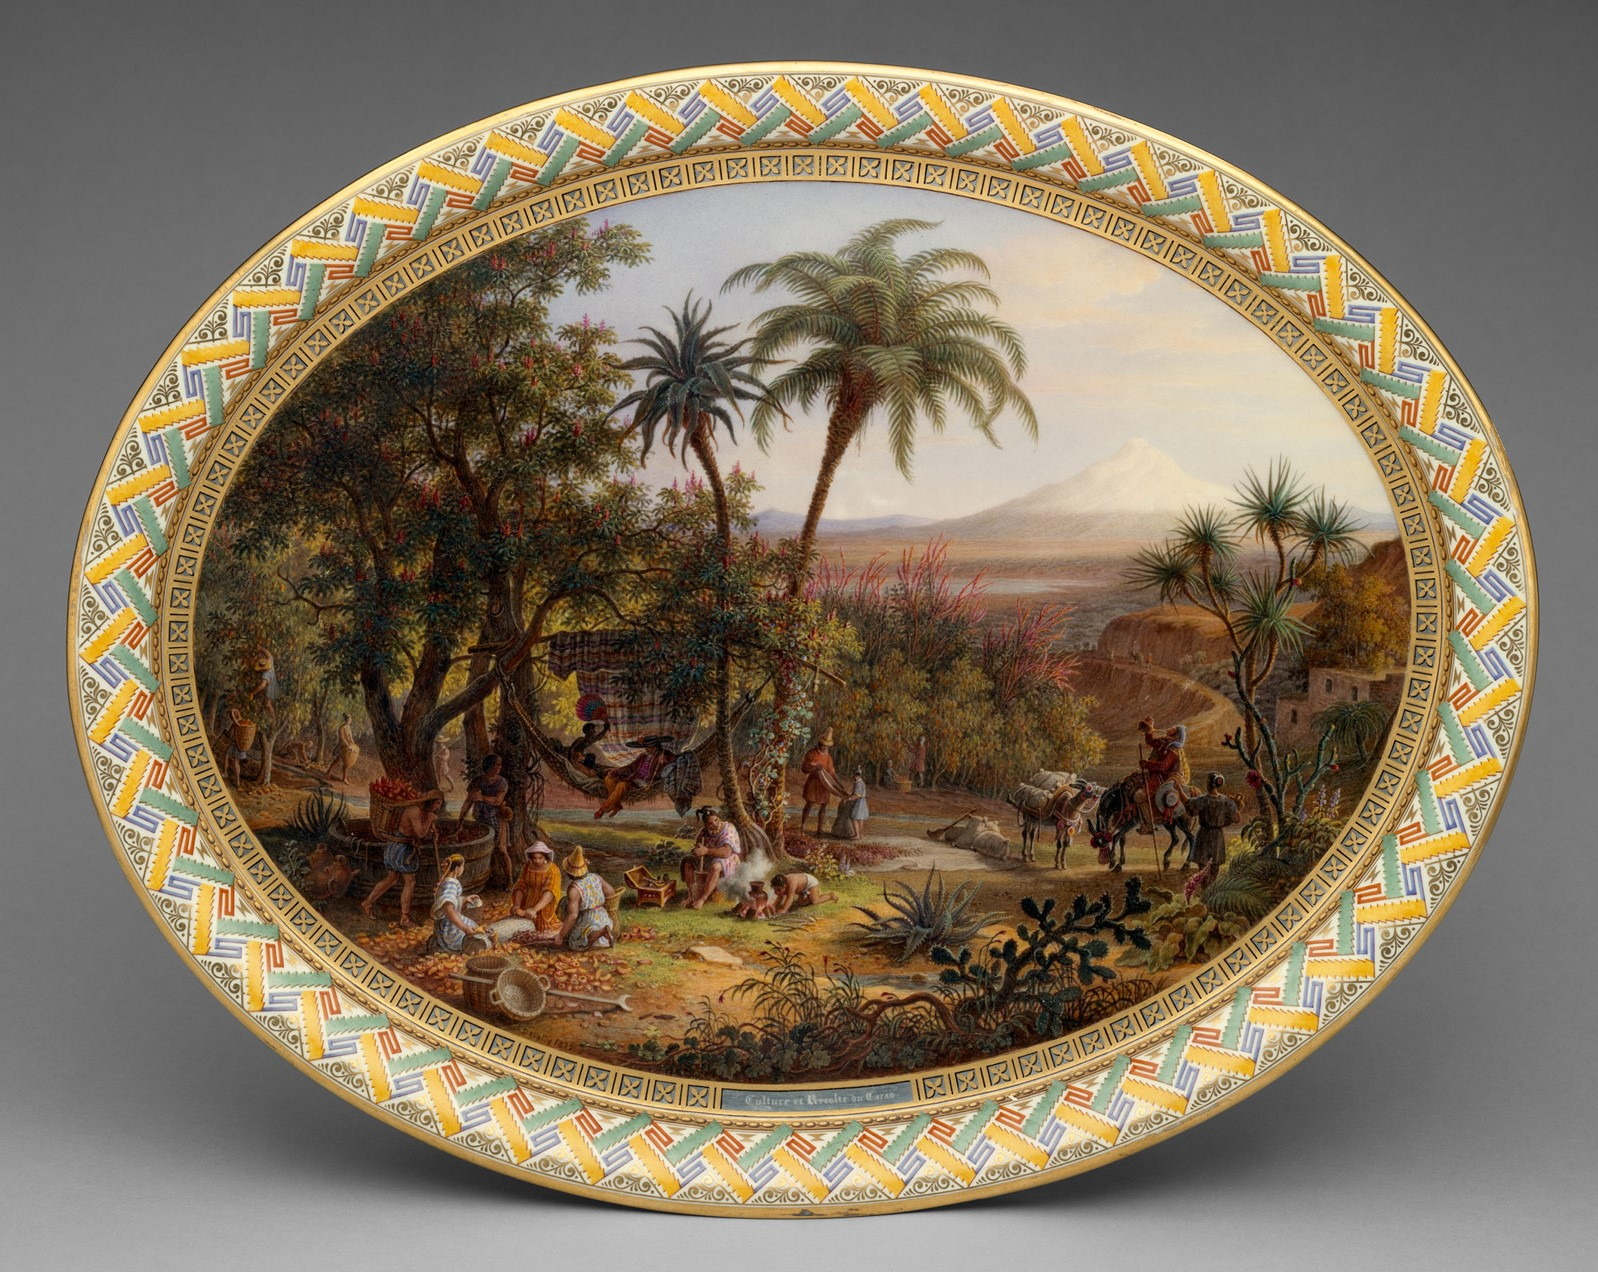 1836 Tray for Coffee service. Hard-paste porcelain. metmuseum